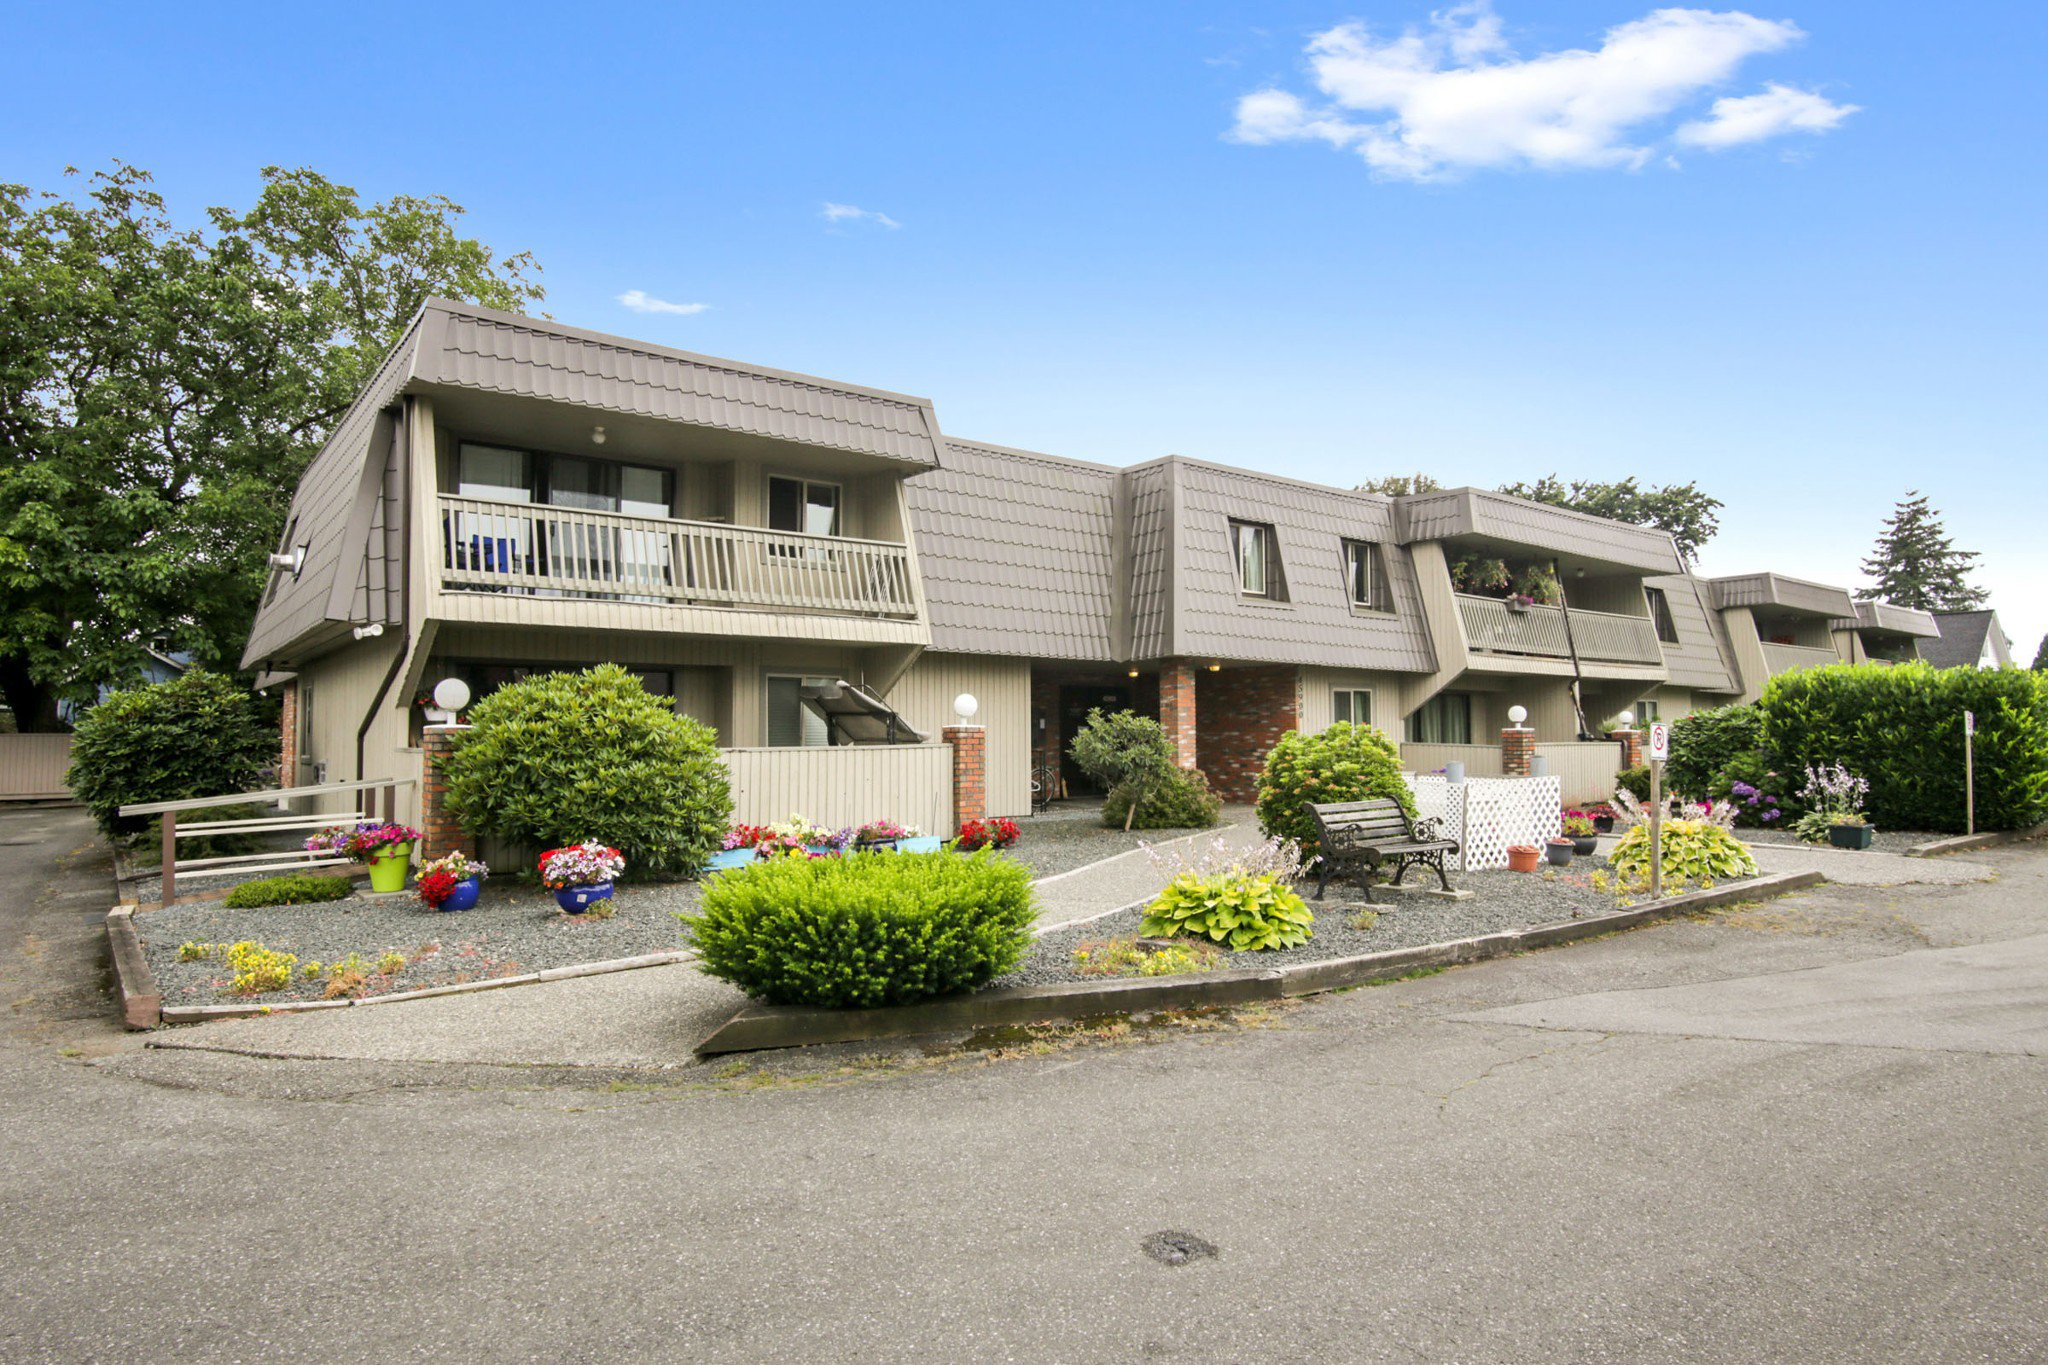 """Main Photo: 108 45900 LEWIS Avenue in Chilliwack: Chilliwack N Yale-Well Condo for sale in """"Lewis Square"""" : MLS®# R2480065"""